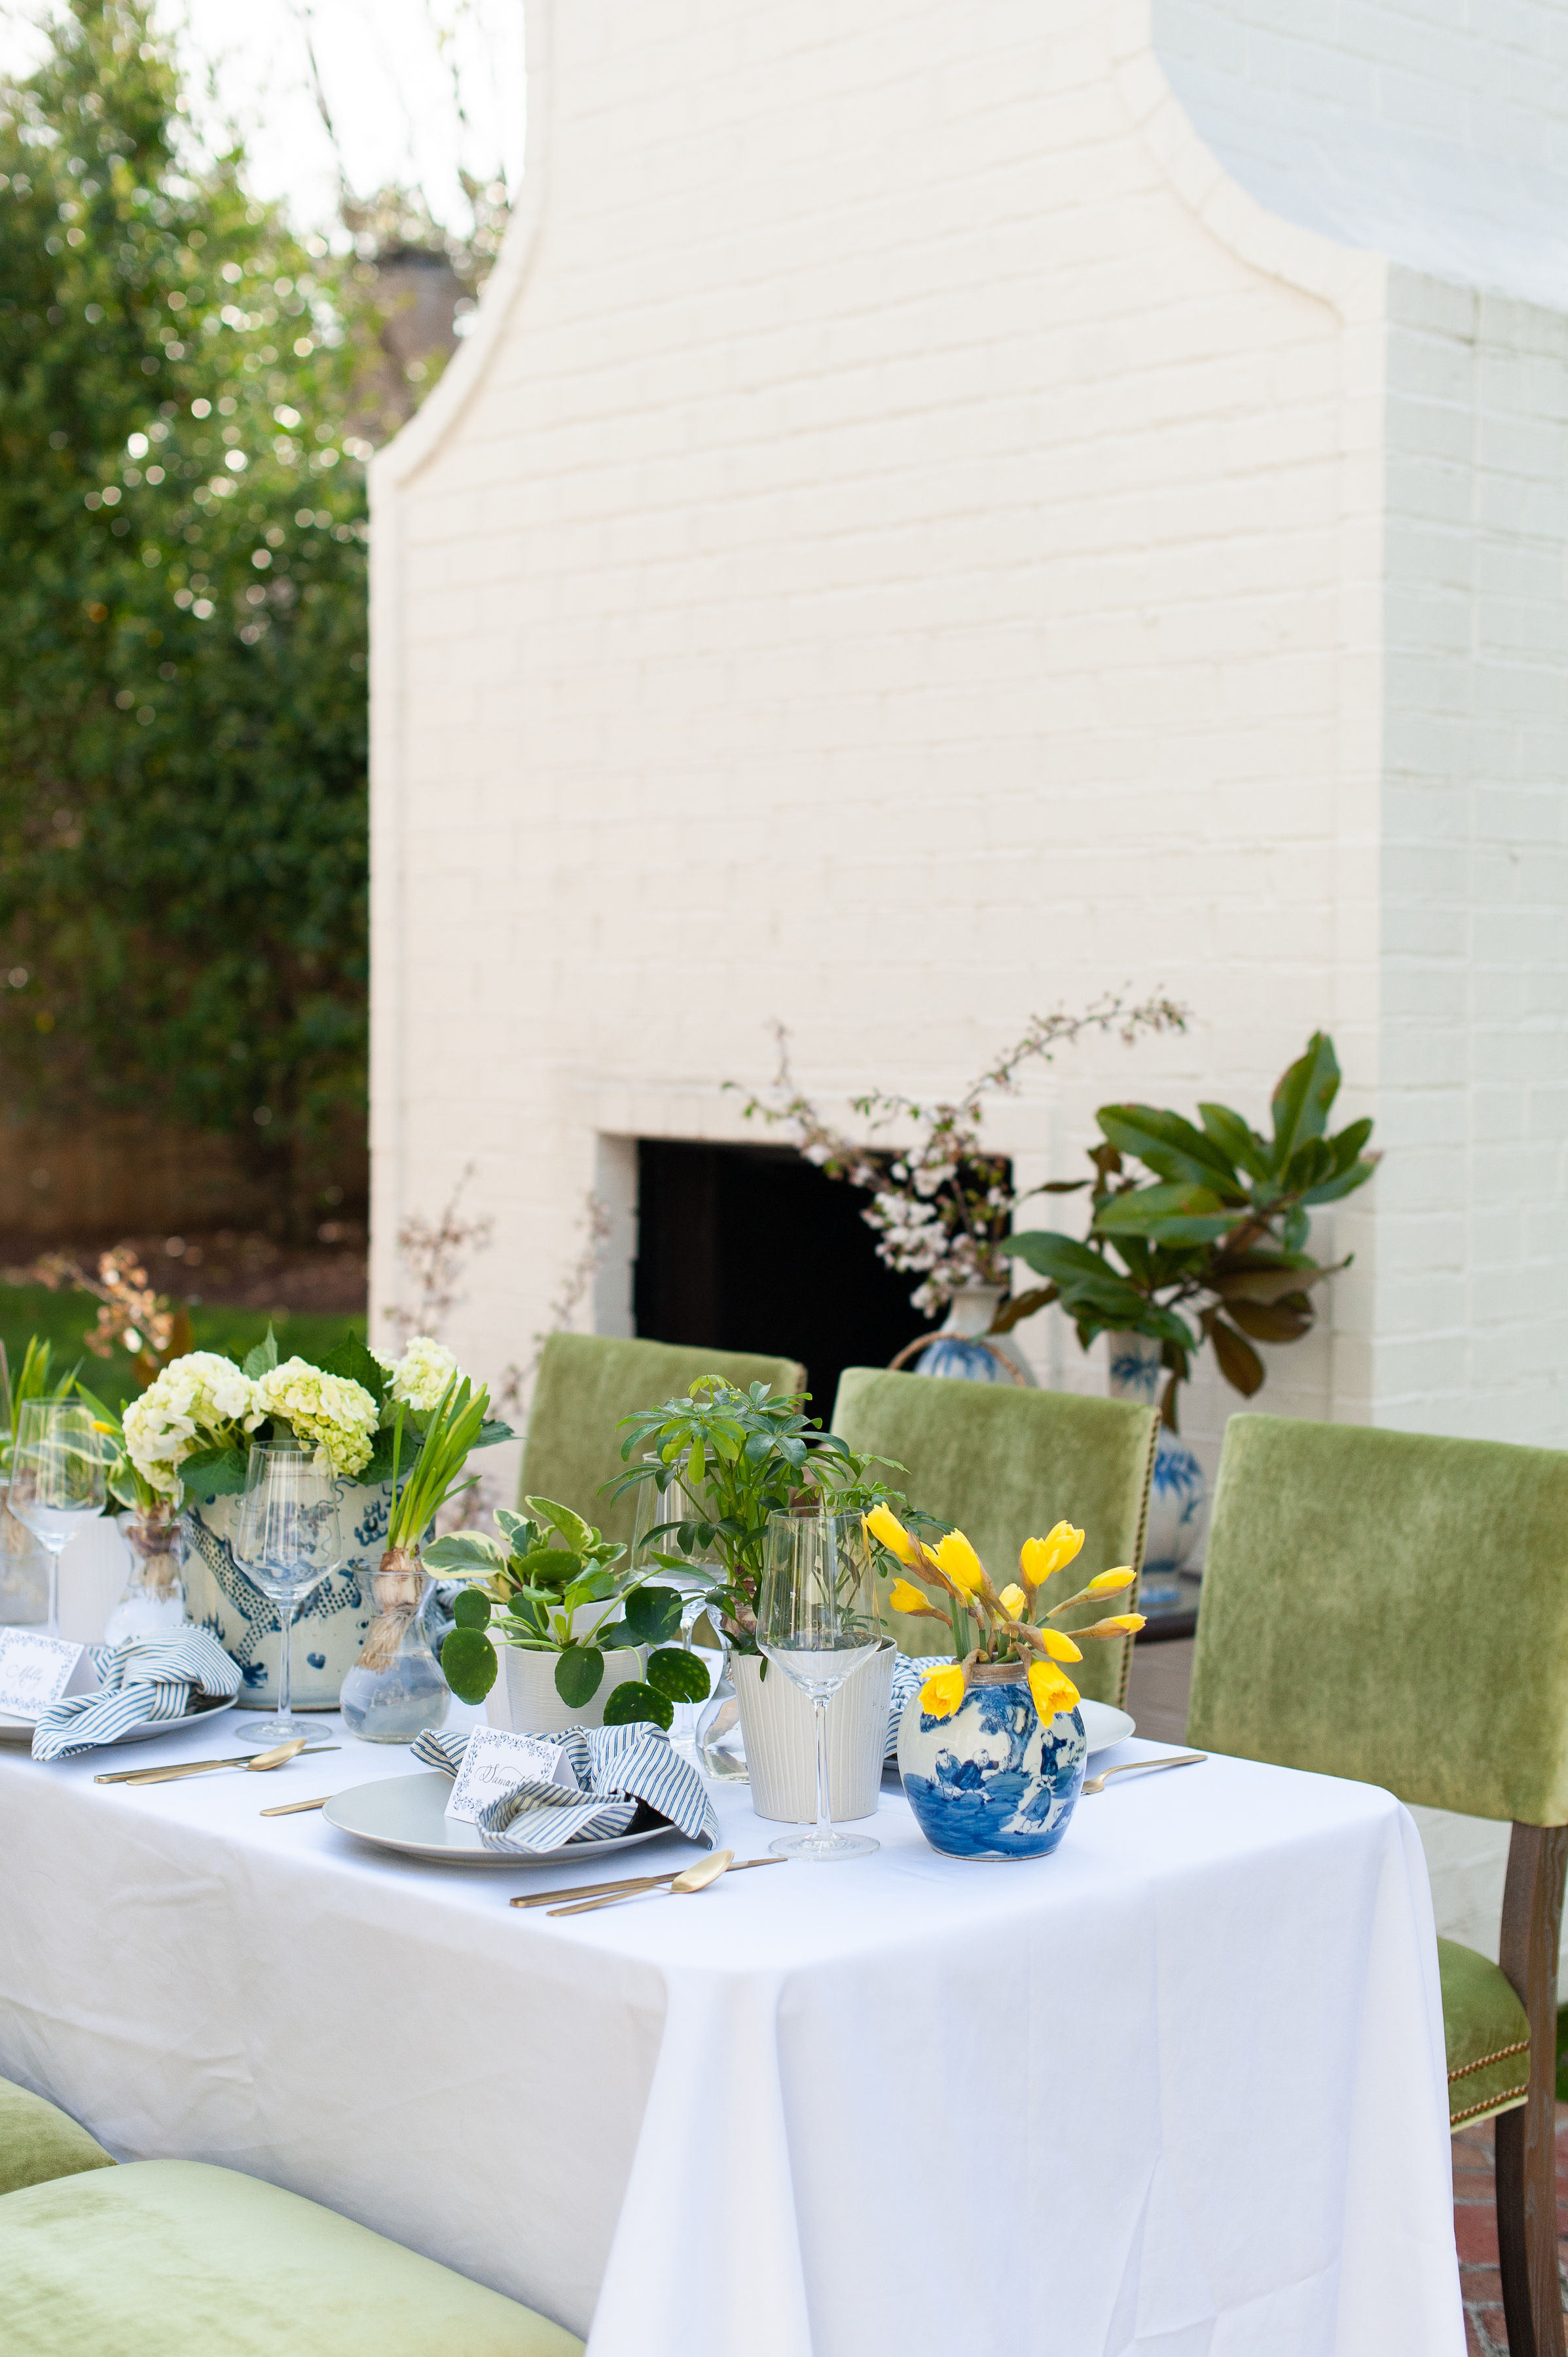 EasterBrunch_CedarLane_TSG-24.jpg